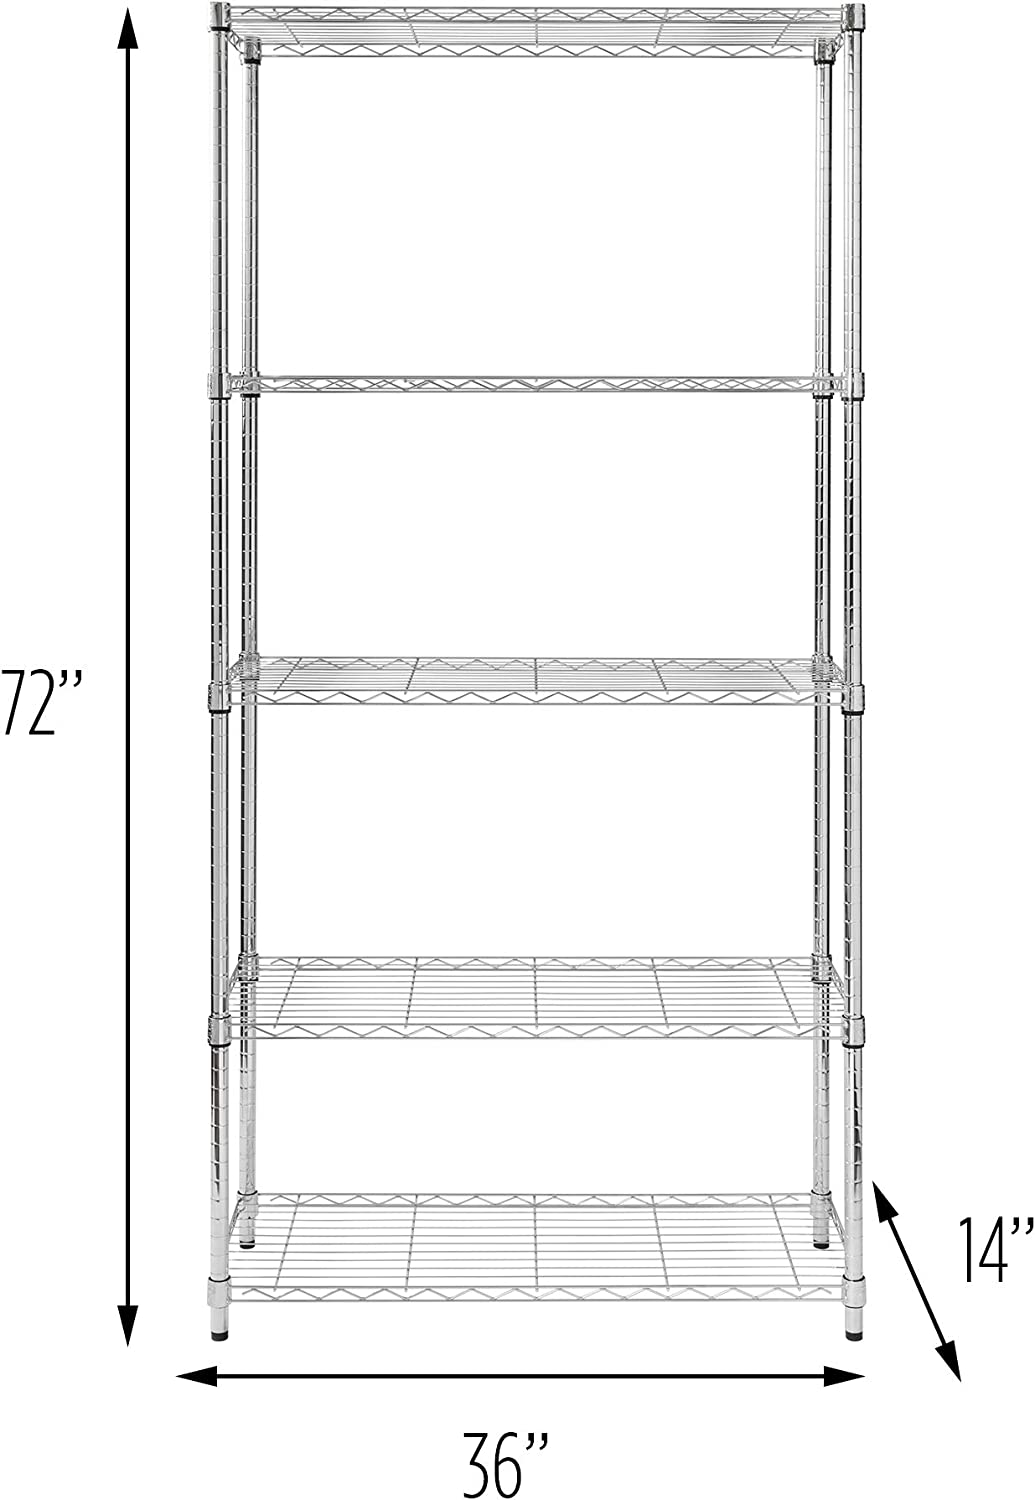 5-Tier Chrome Heavy-Duty Adjustable Shelving Unit with 200-lb Per Shelf Weight Capacity: Home & Kitchen